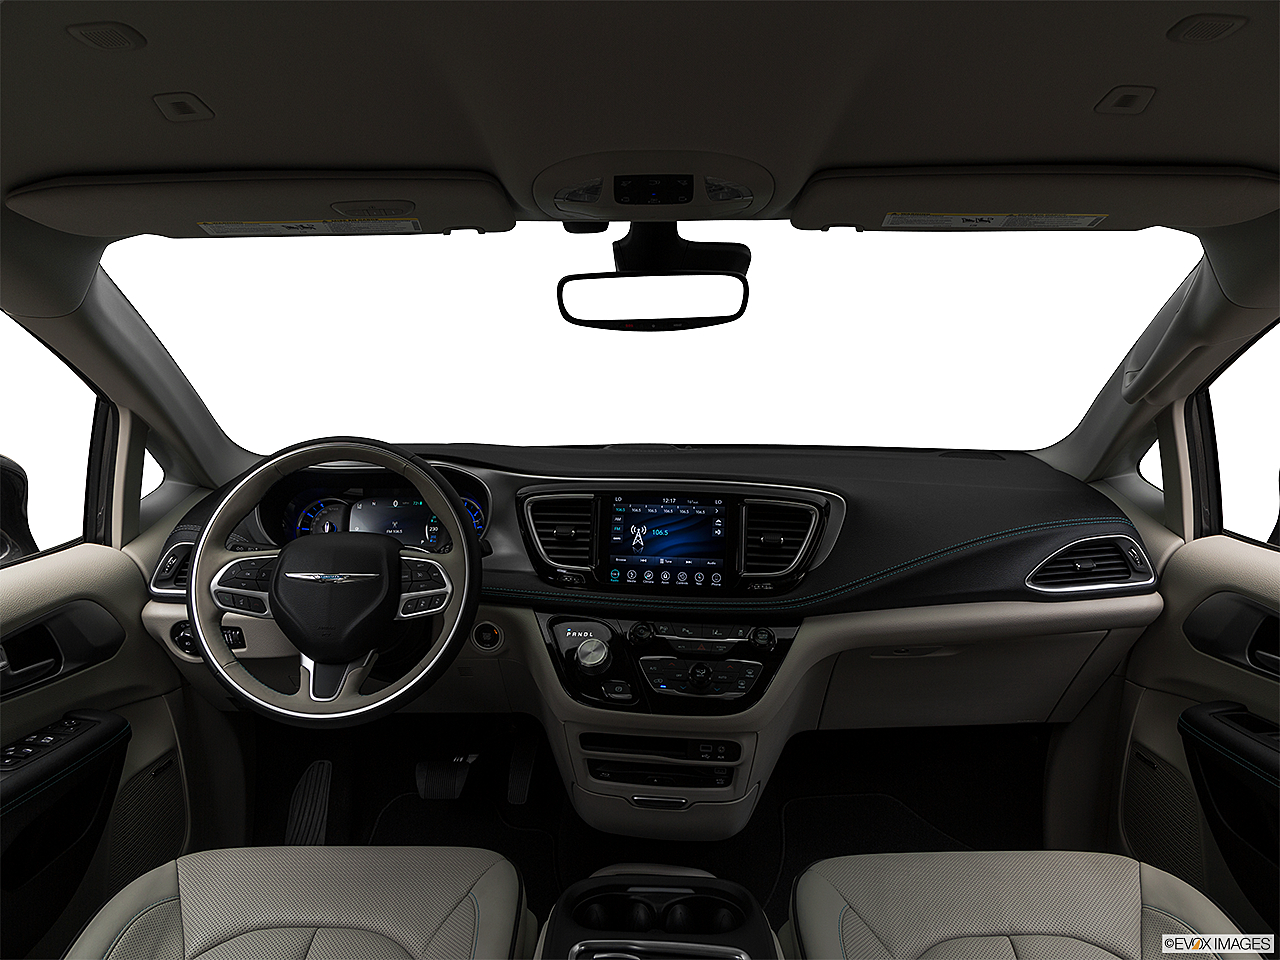 2019 Chrysler Pacifica Hybrid Limited, centered wide dash shot